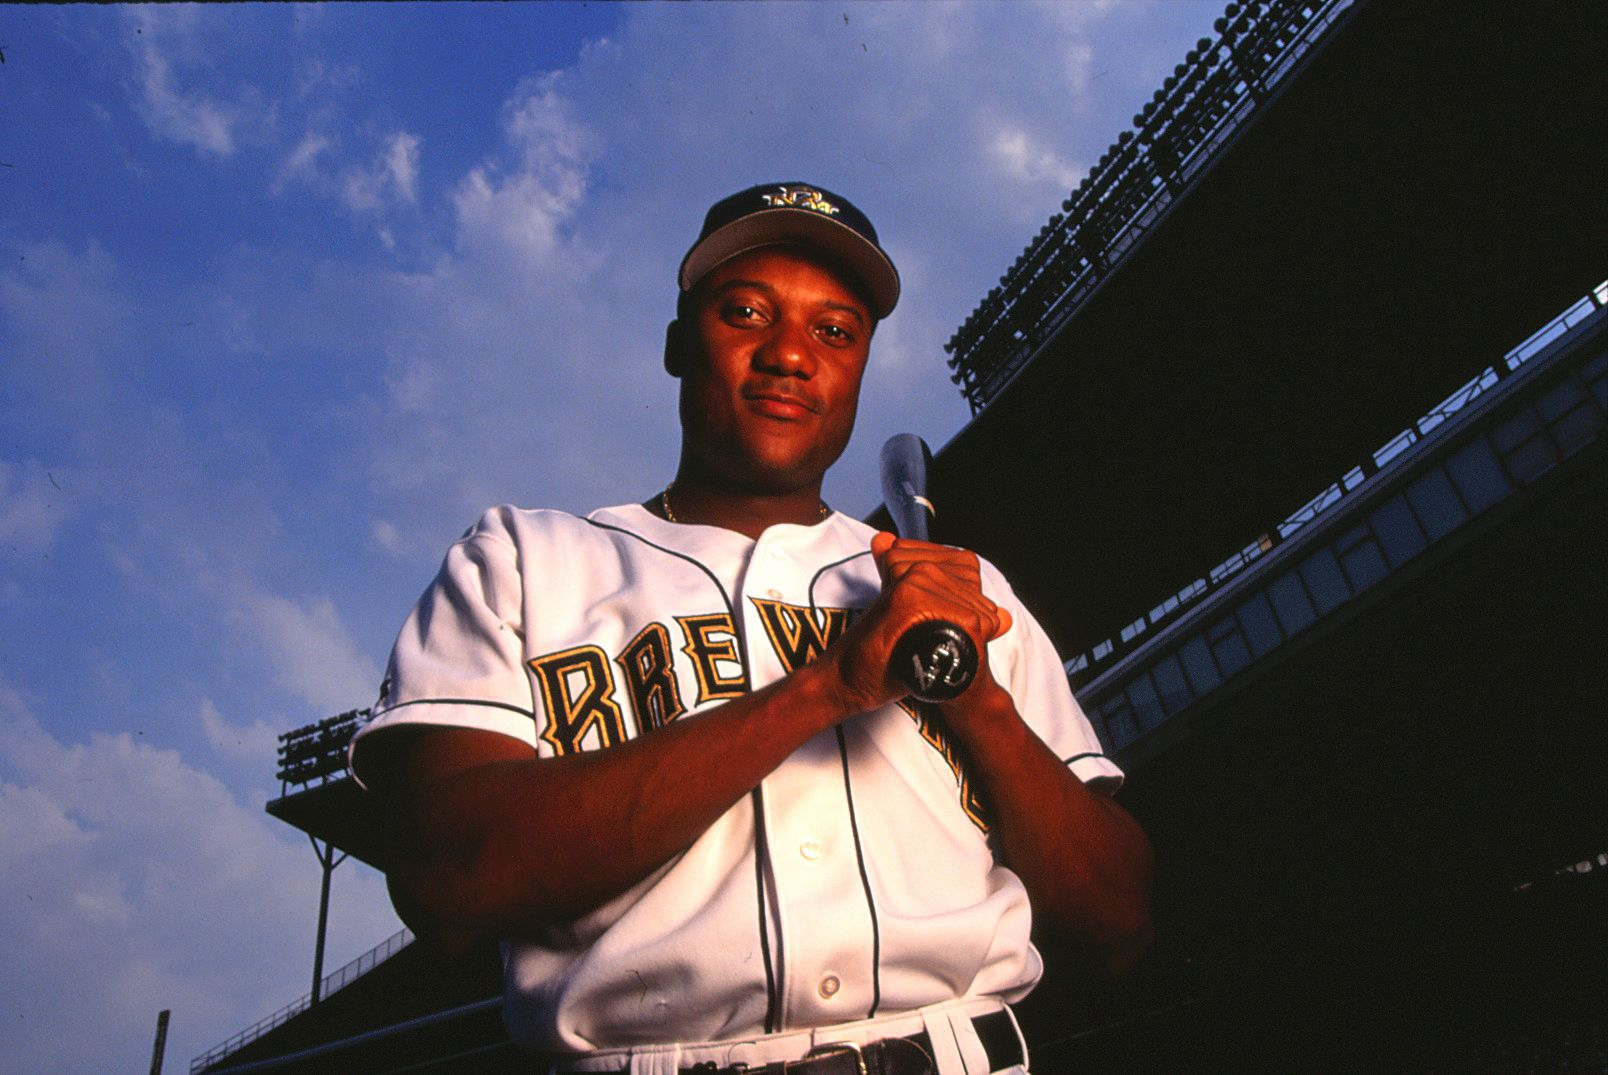 Throwbackthursday Brewers Wall Of Honor Edition Continues With Darryl Hamilton Who Played 7 Of His 13 Major League Sea Brewers Baseball Brewers Major League